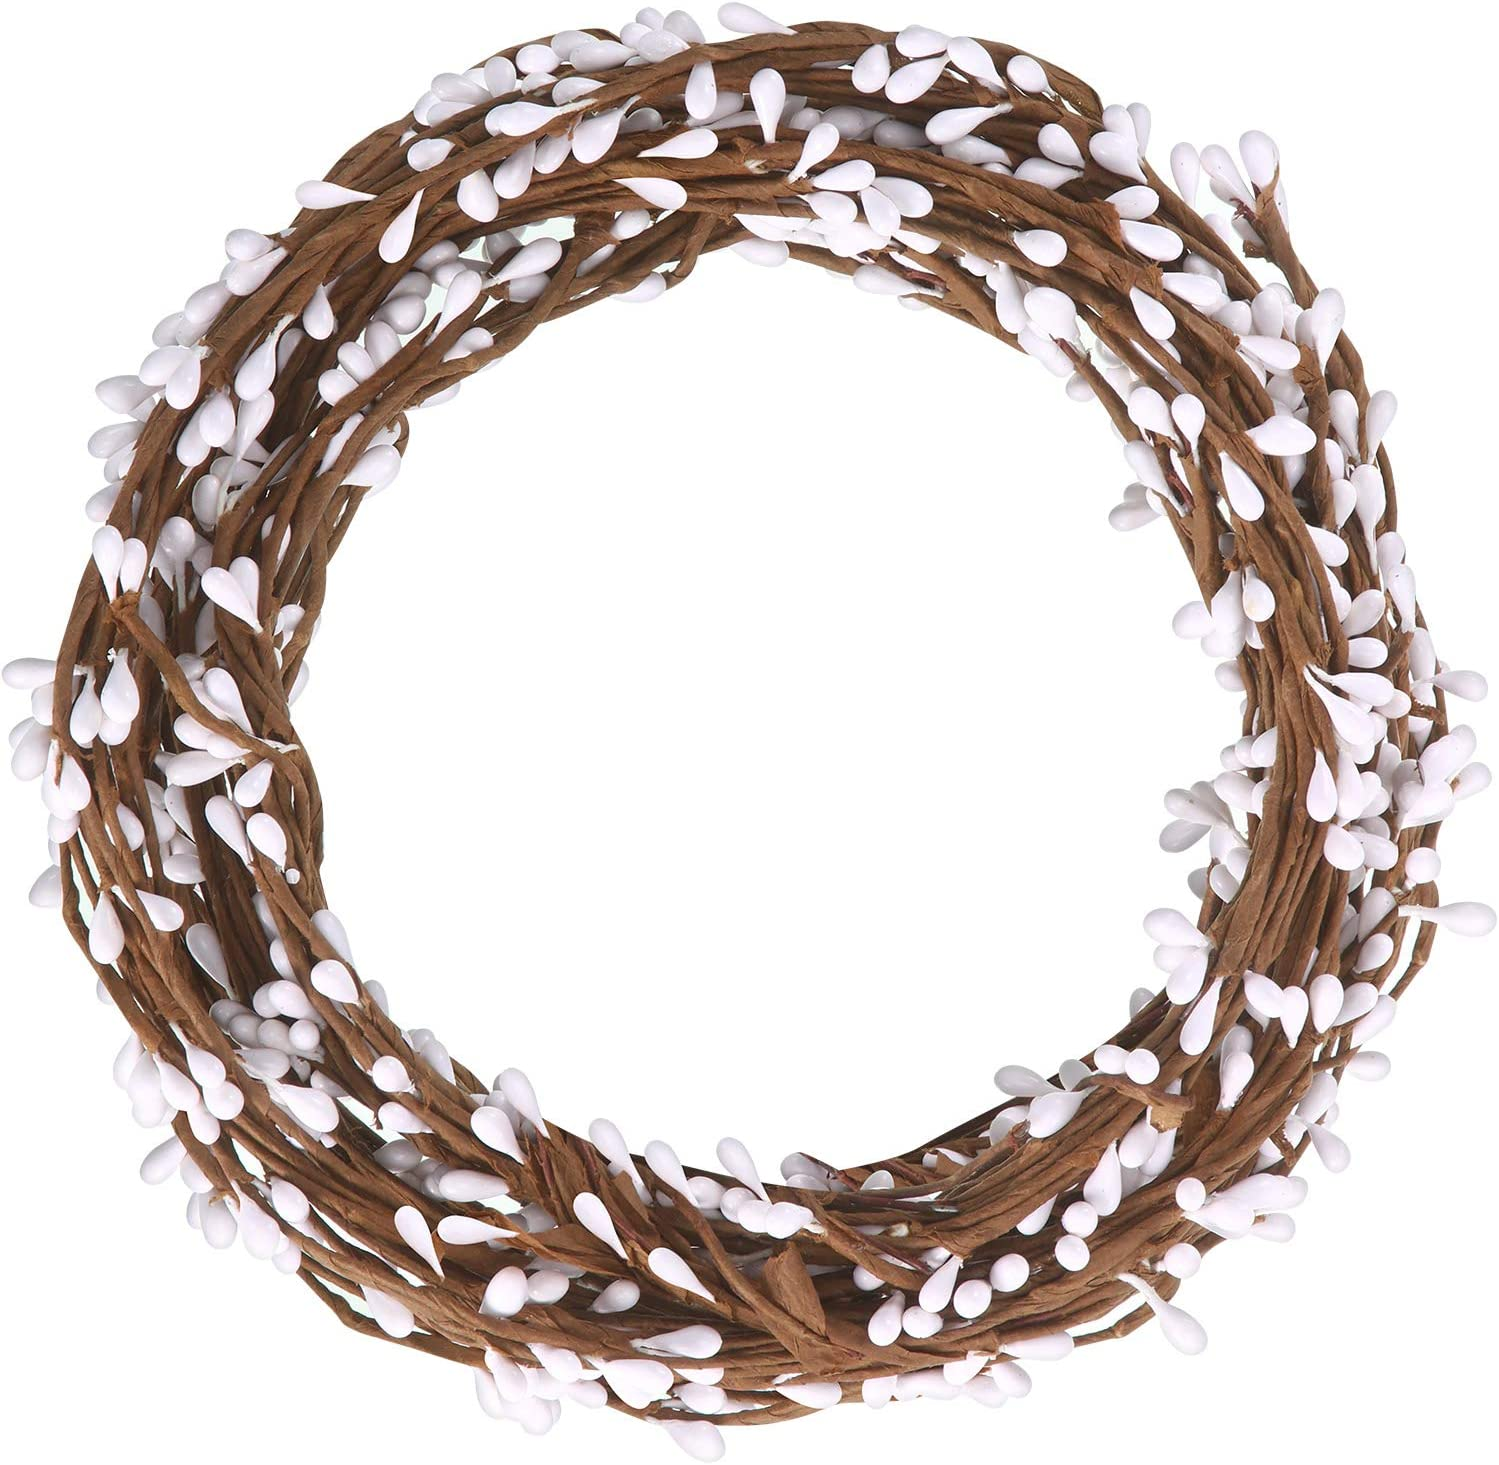 WILLBOND 64 Feet 30 Packs Ply Pip Berry Garland for Christmas Winter Indoor Outdoor Decor Head Wreaths Wedding Crowns (White)